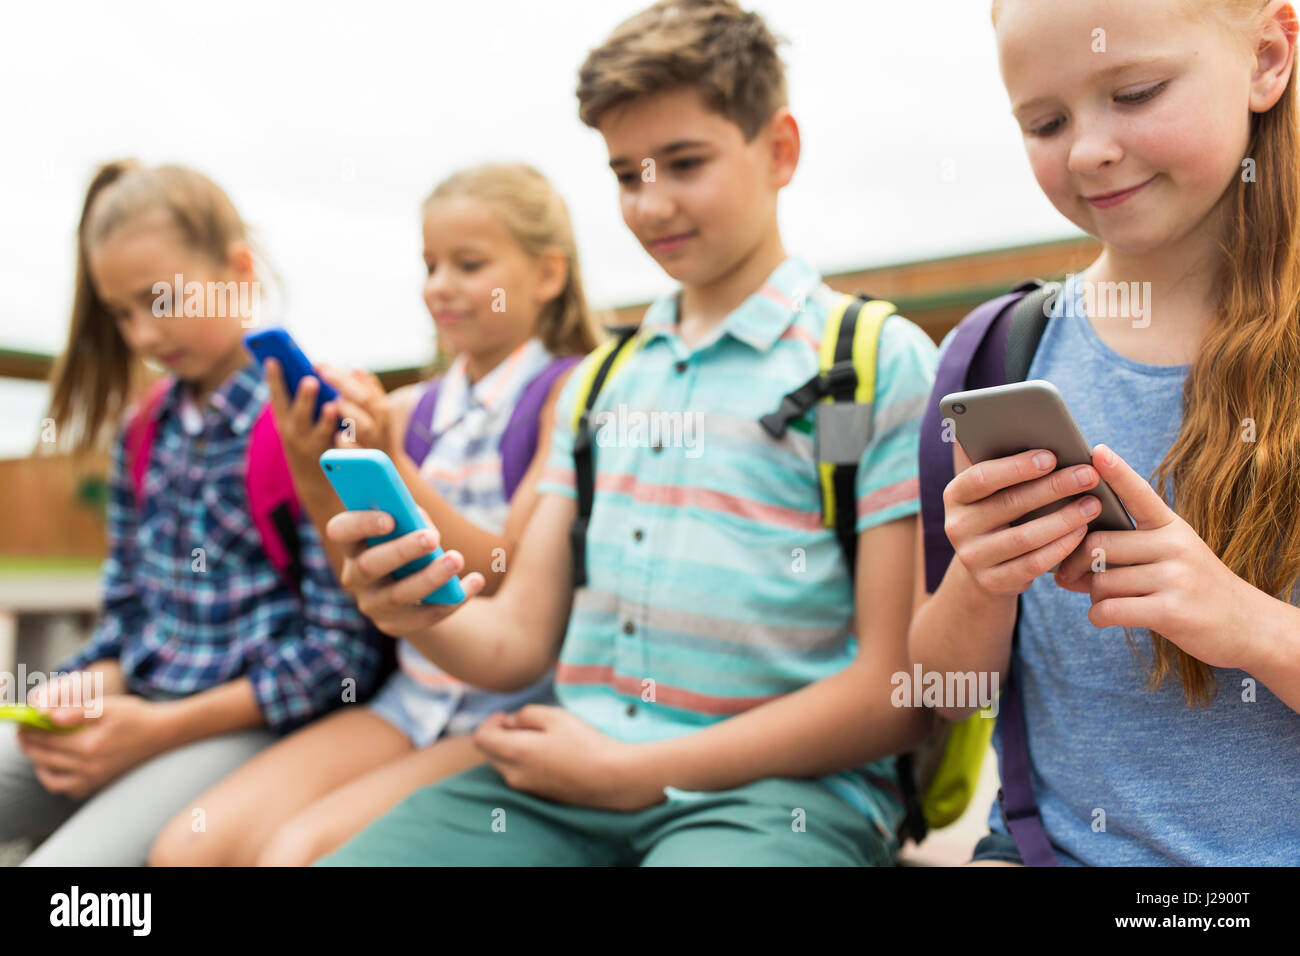 elementary school students with smartphones - Stock Image